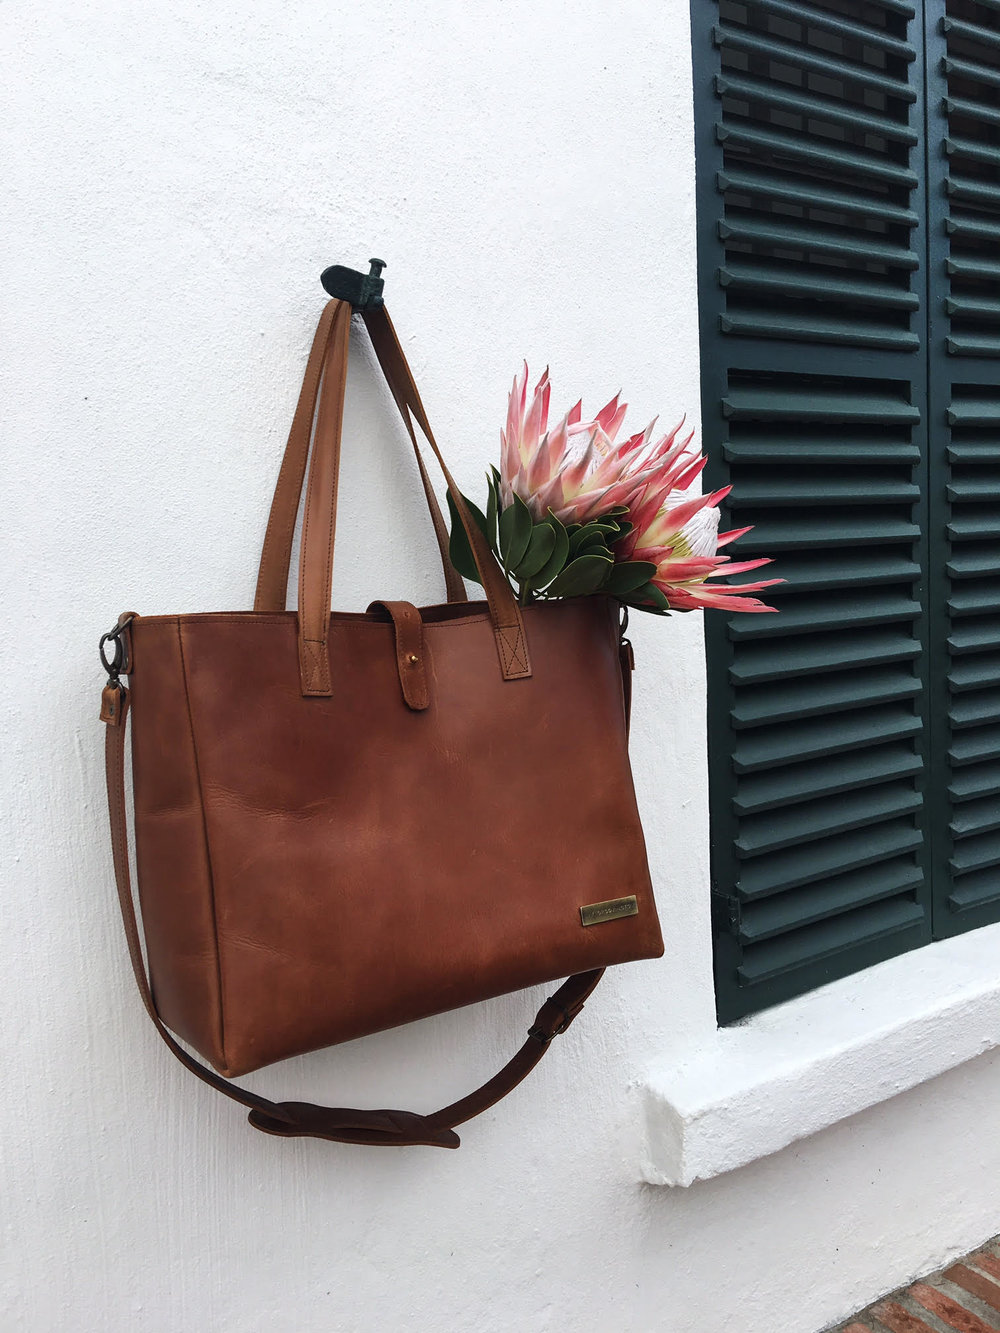 cognac bag - white wall and proteas.jpg